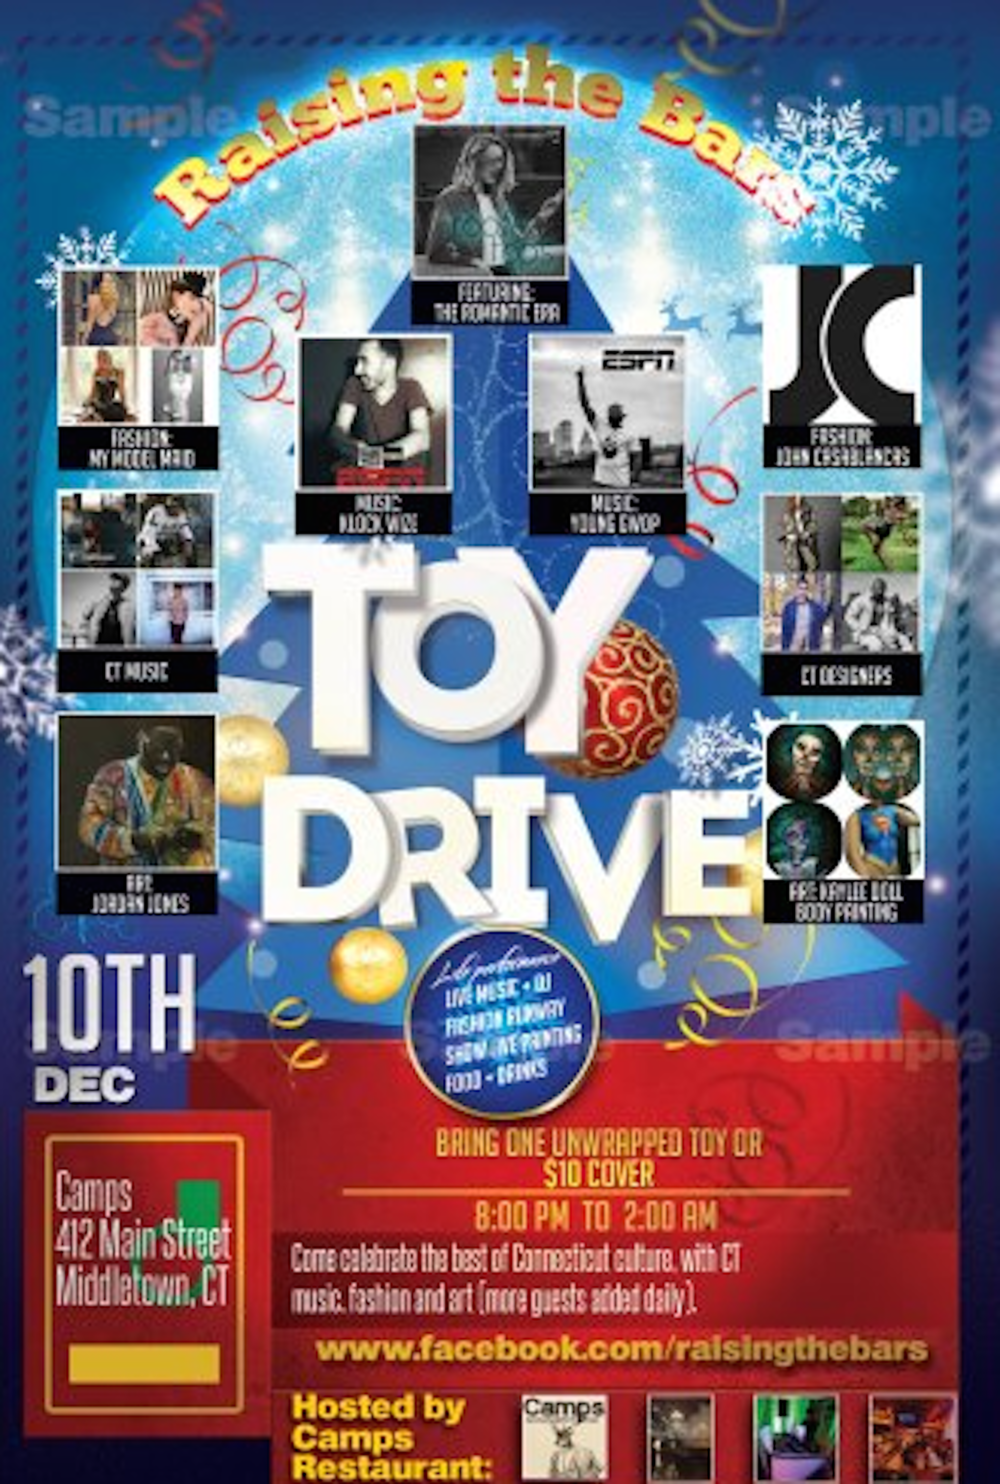 Raising the Bars toy drive will feature a fashion show, musical guests and hip-hop artists to collect gifts for Toys for Tots on Dec. 10 in Middletown, Conn. (Screenshot/Raising the Bars Toy Drive and Concert/Fashion Show)